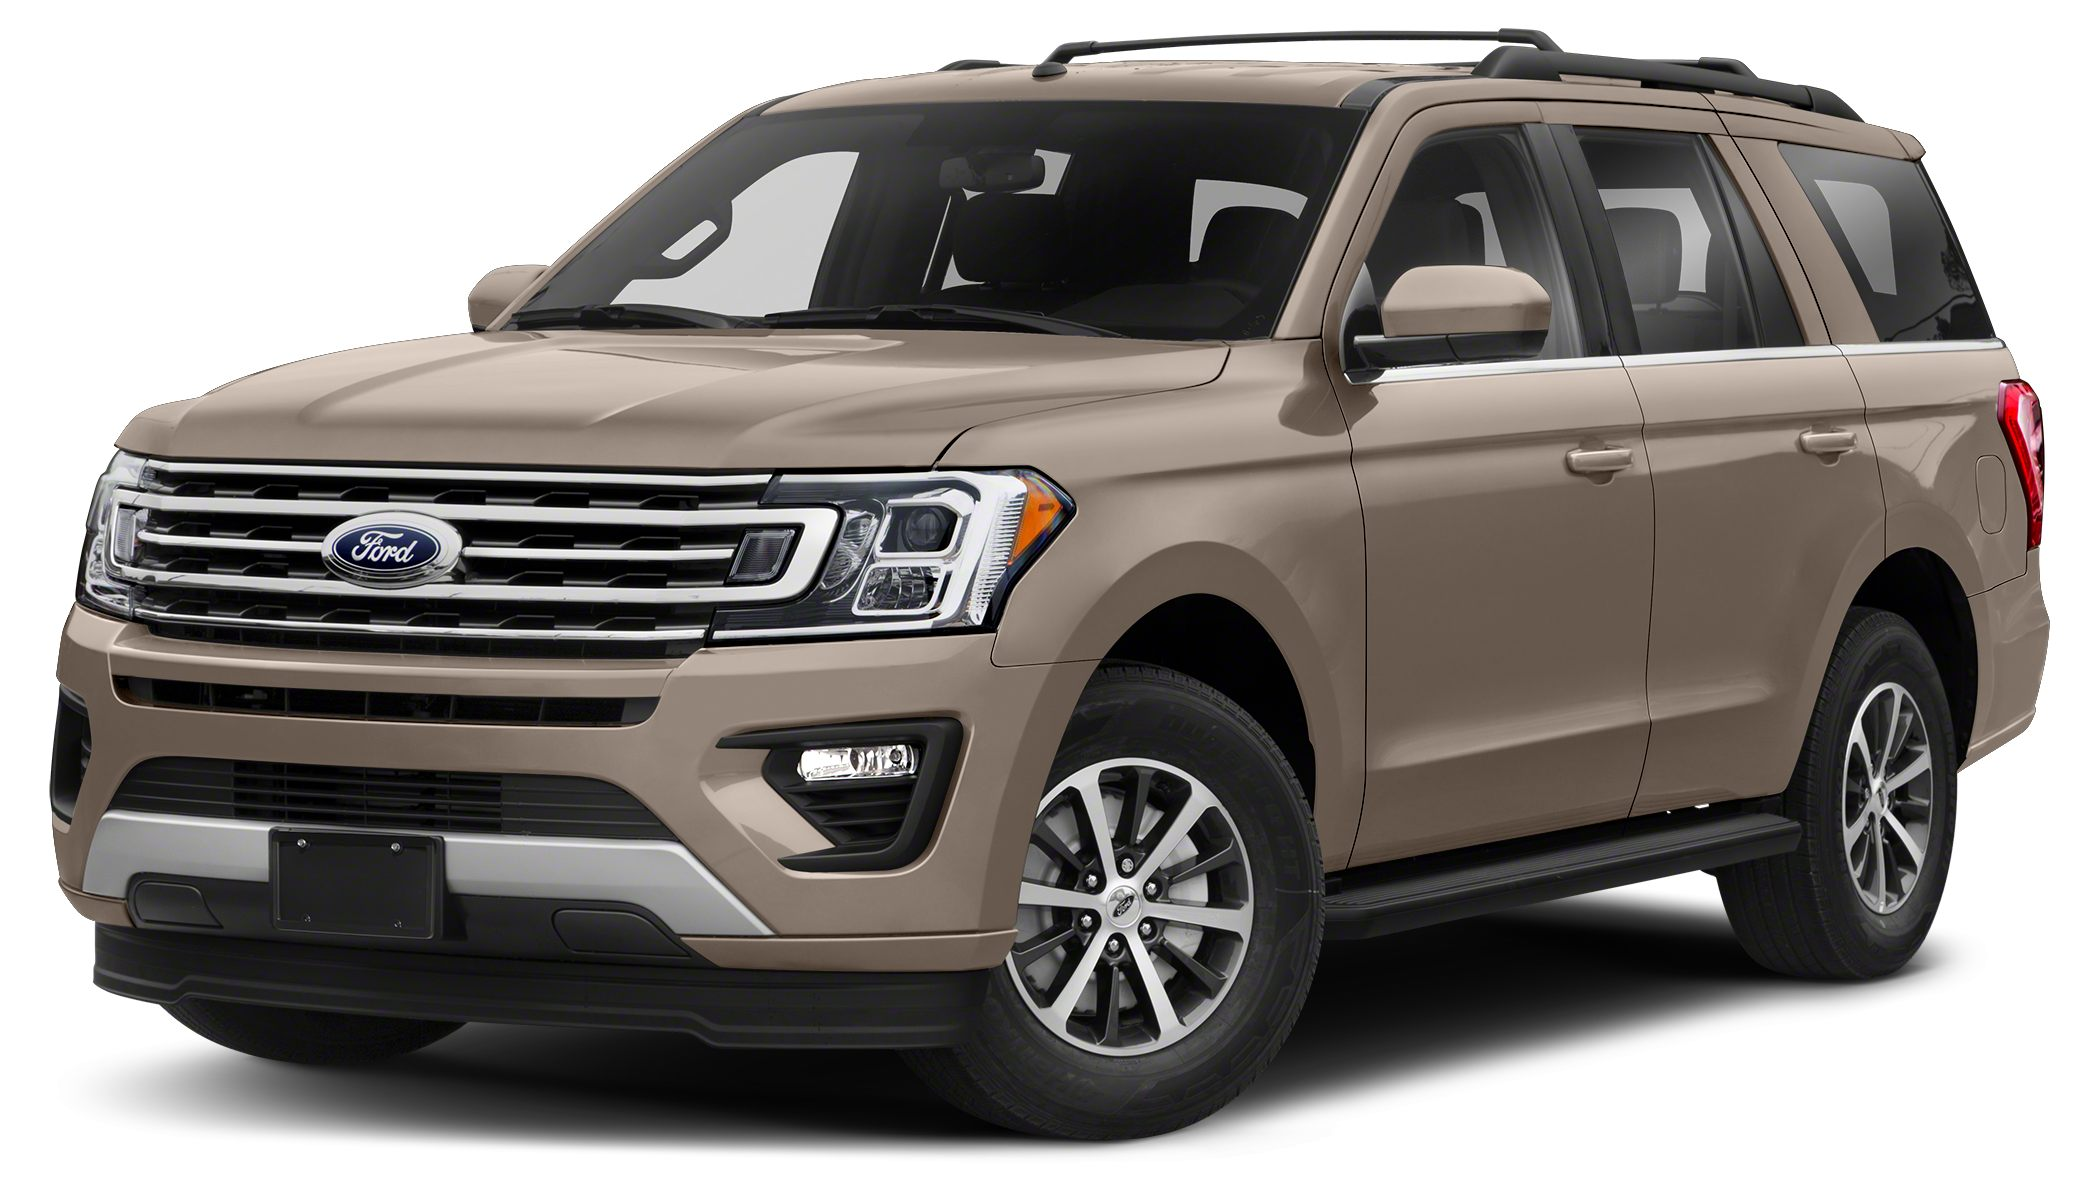 2018 Ford Expedition XLT 2018 Ford Expedition XLT EcoBoost 35L V6 GTDi DOHC 24V Twin Turbocharged